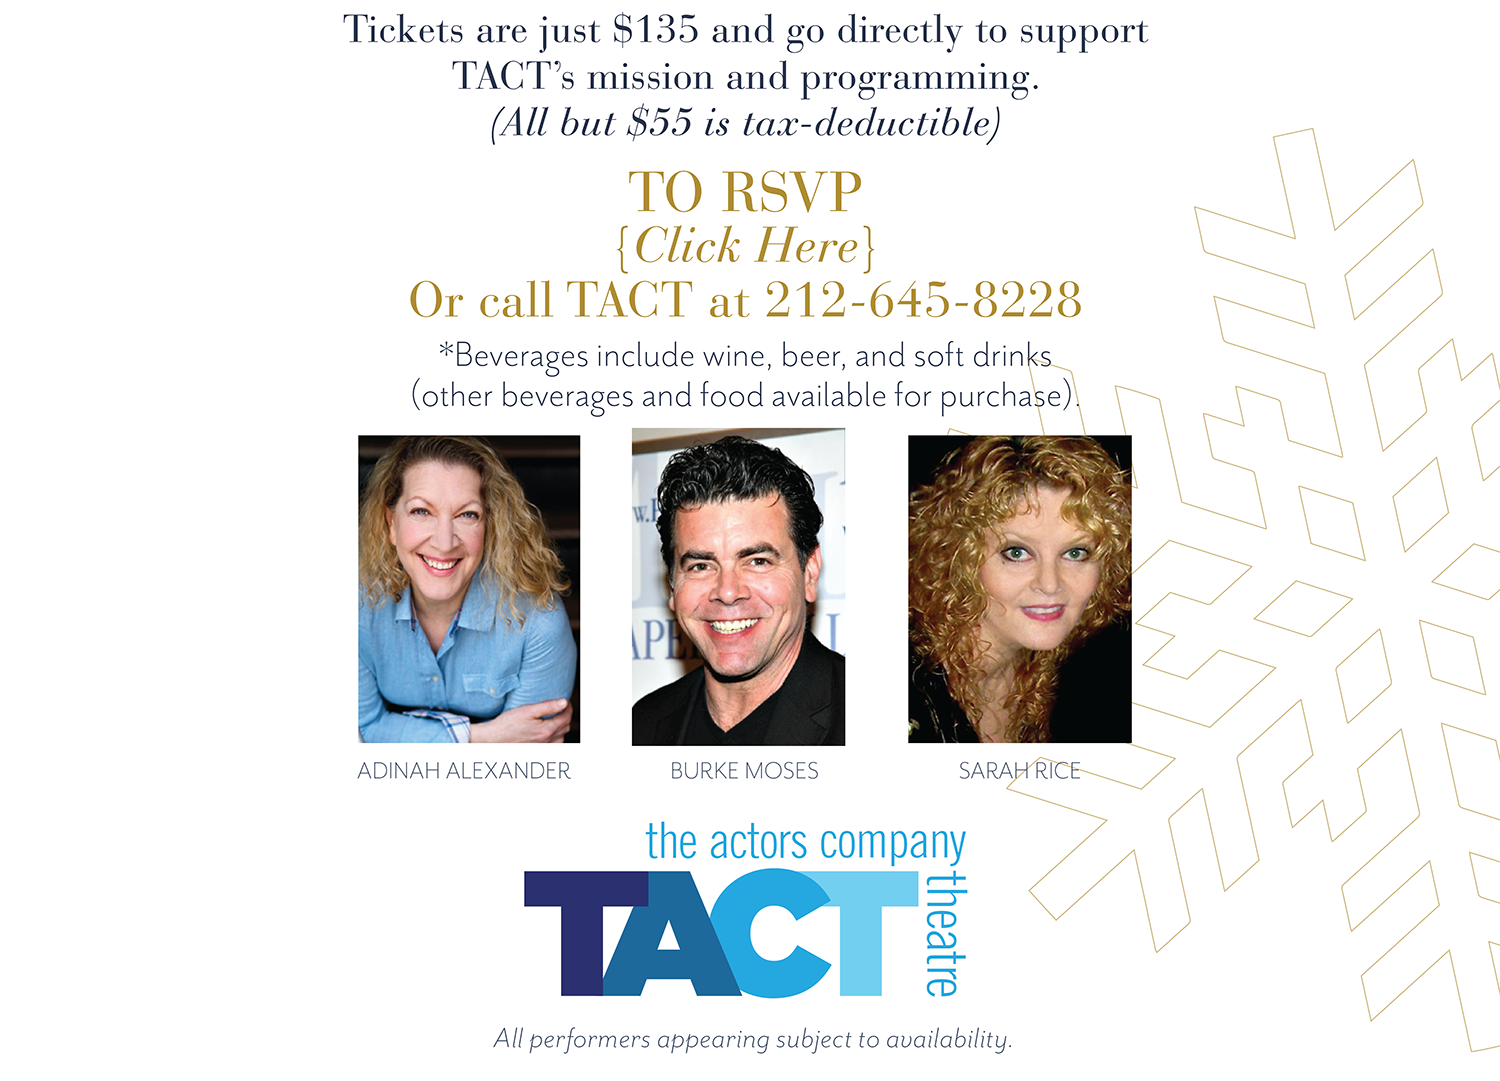 TACT_WinterBenefit_Invite_B-3-04